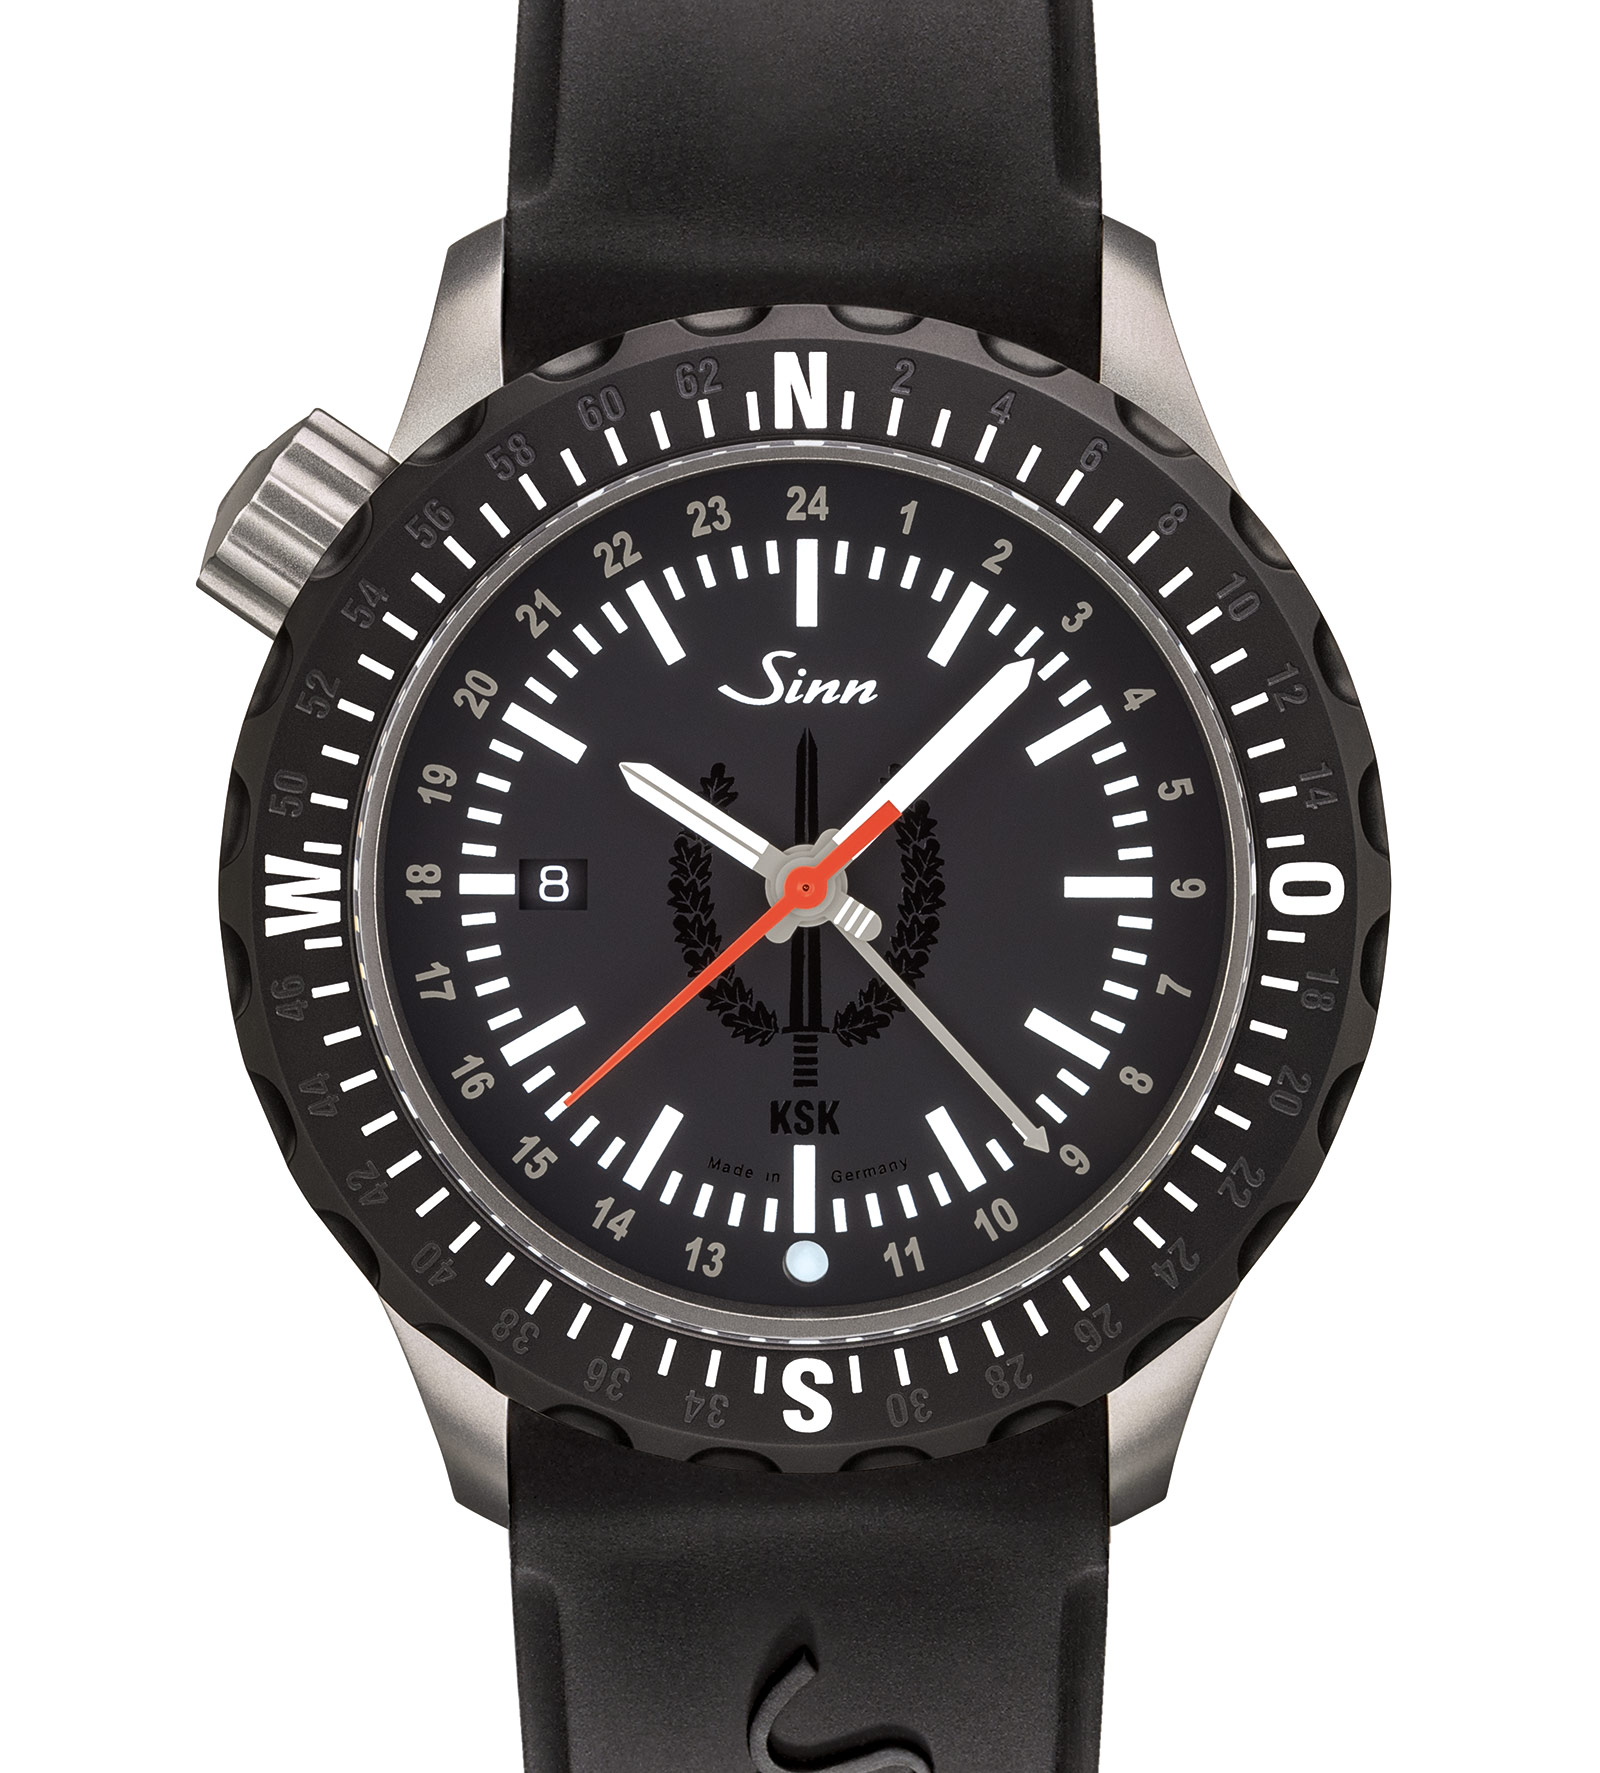 Sinn 212 KSK dive watch 2